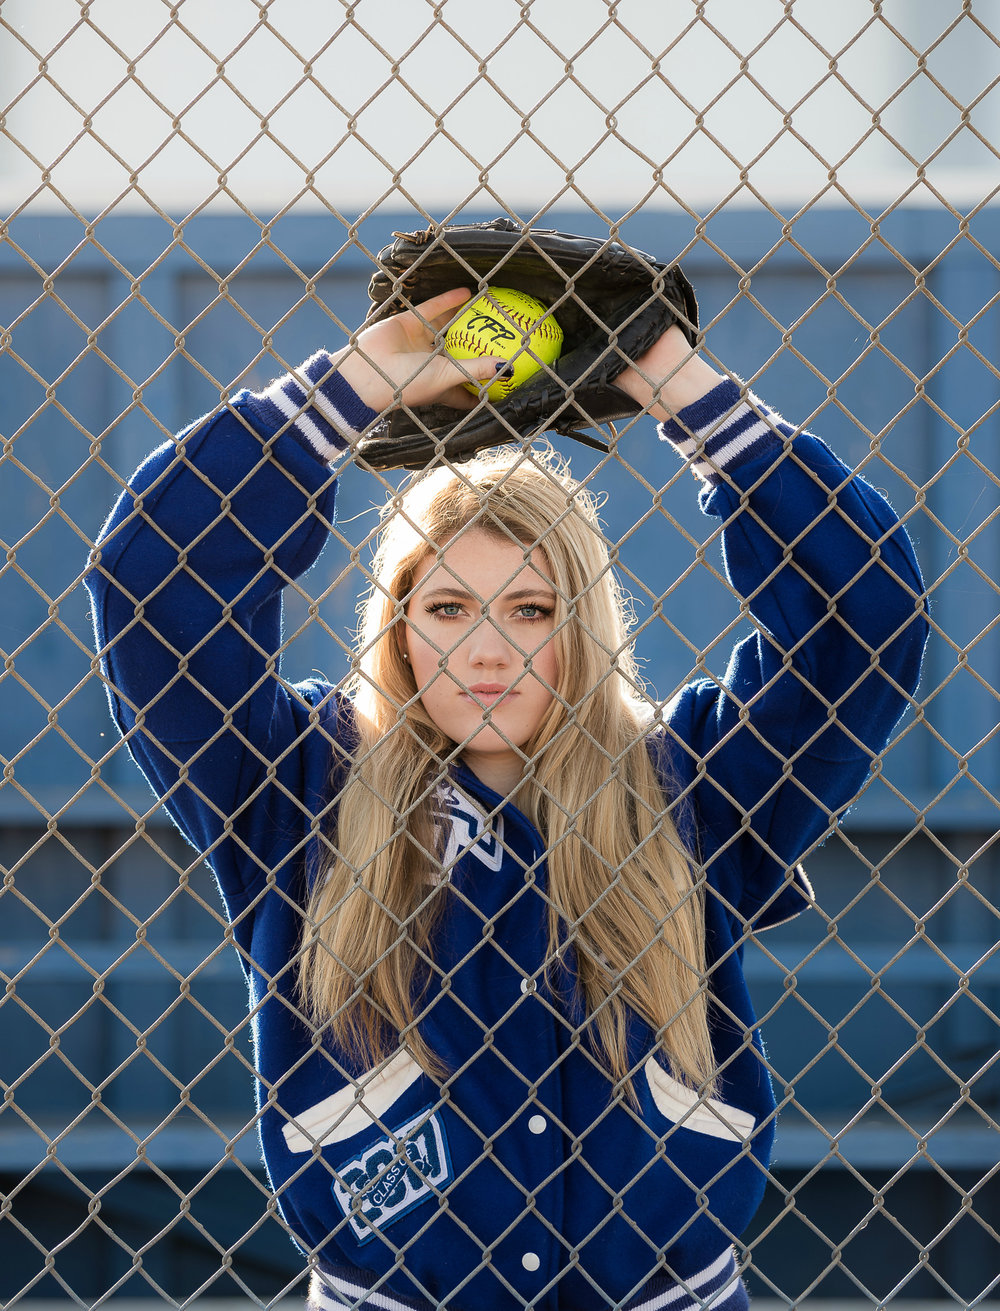 HumboldtCountySeniorPhotographer-Shelby-FortunaHigh-Softball-4.JPG